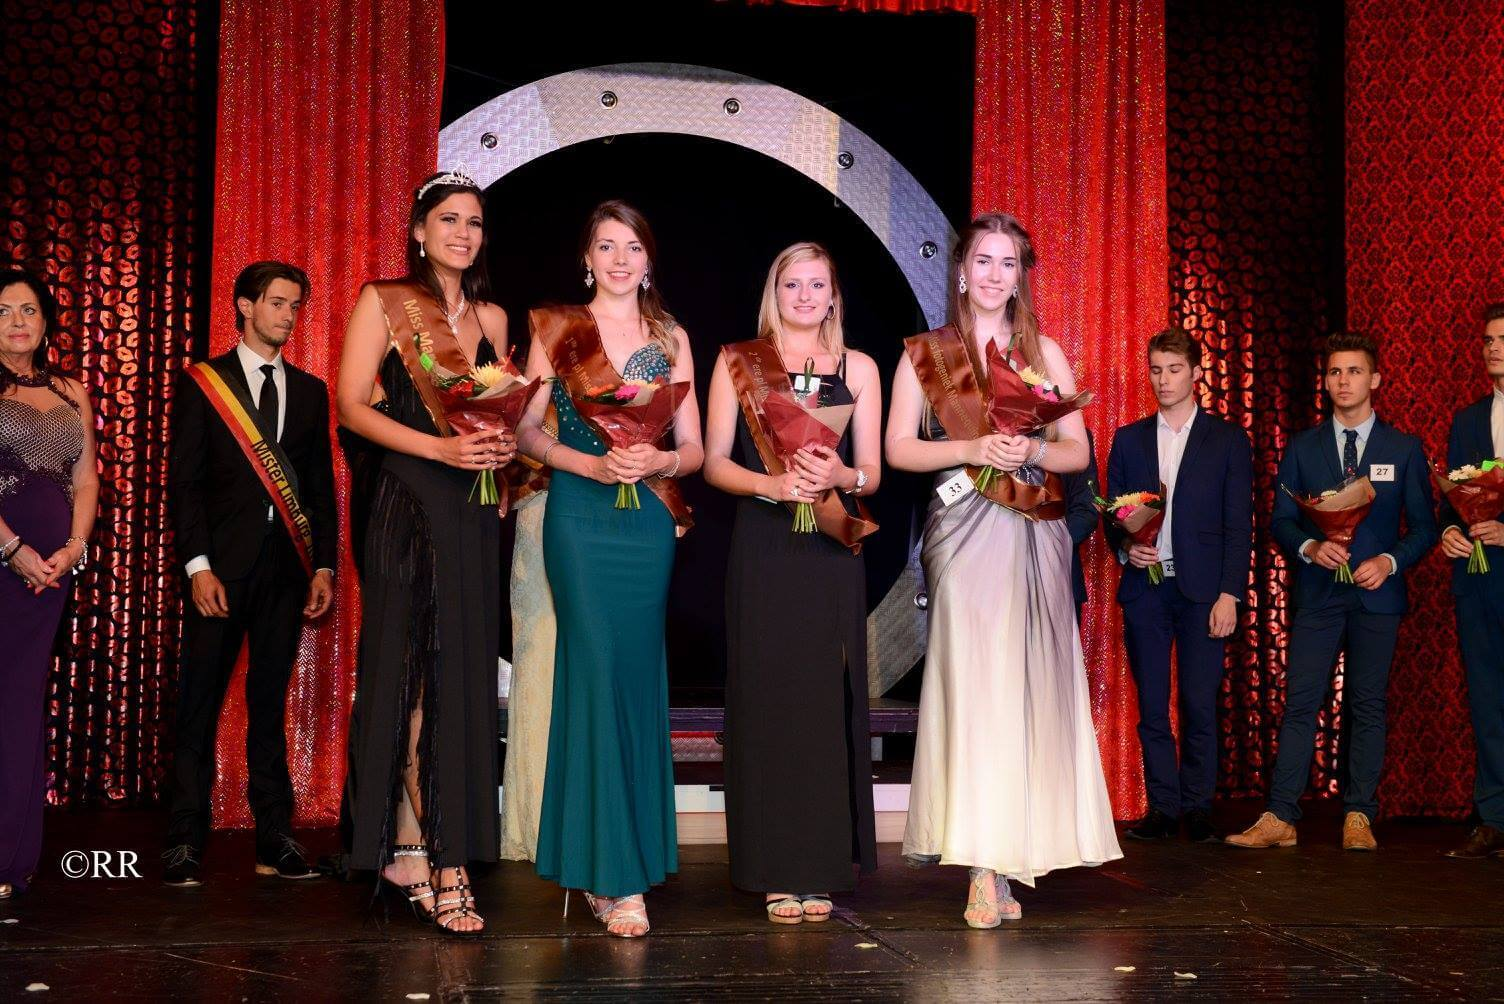 Finale Miss Limburg International - Mister Limburg - Miss Mannequin - Young mannequin - Lady mannequin @ versuz